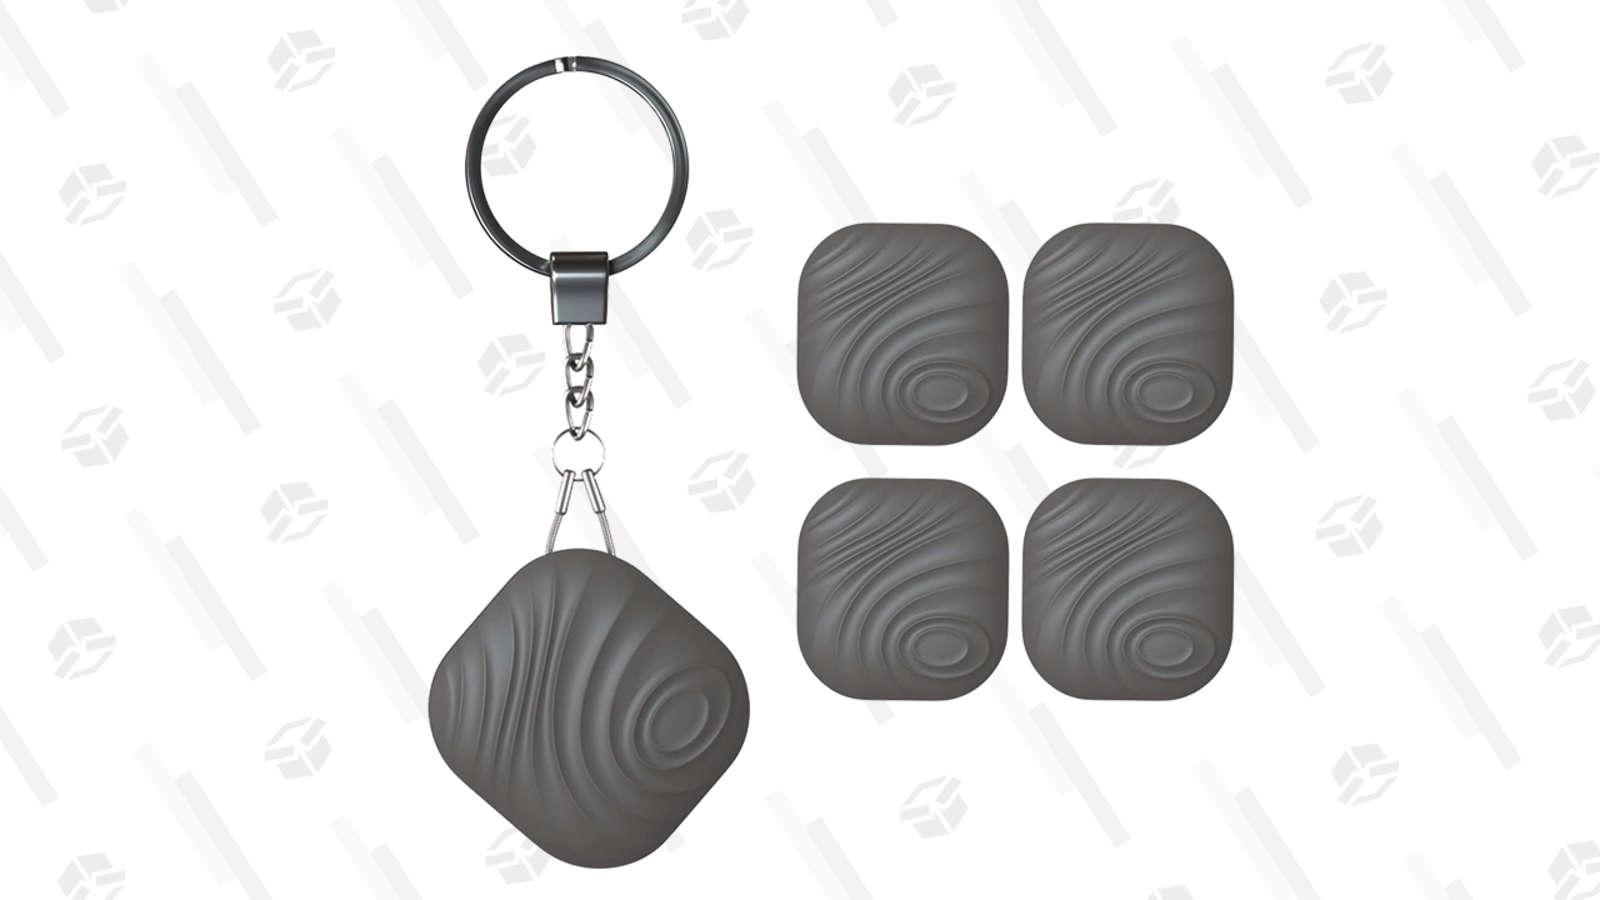 Quit Losing Shit With 20% off This 4-Pack of Bluetooth Trackers